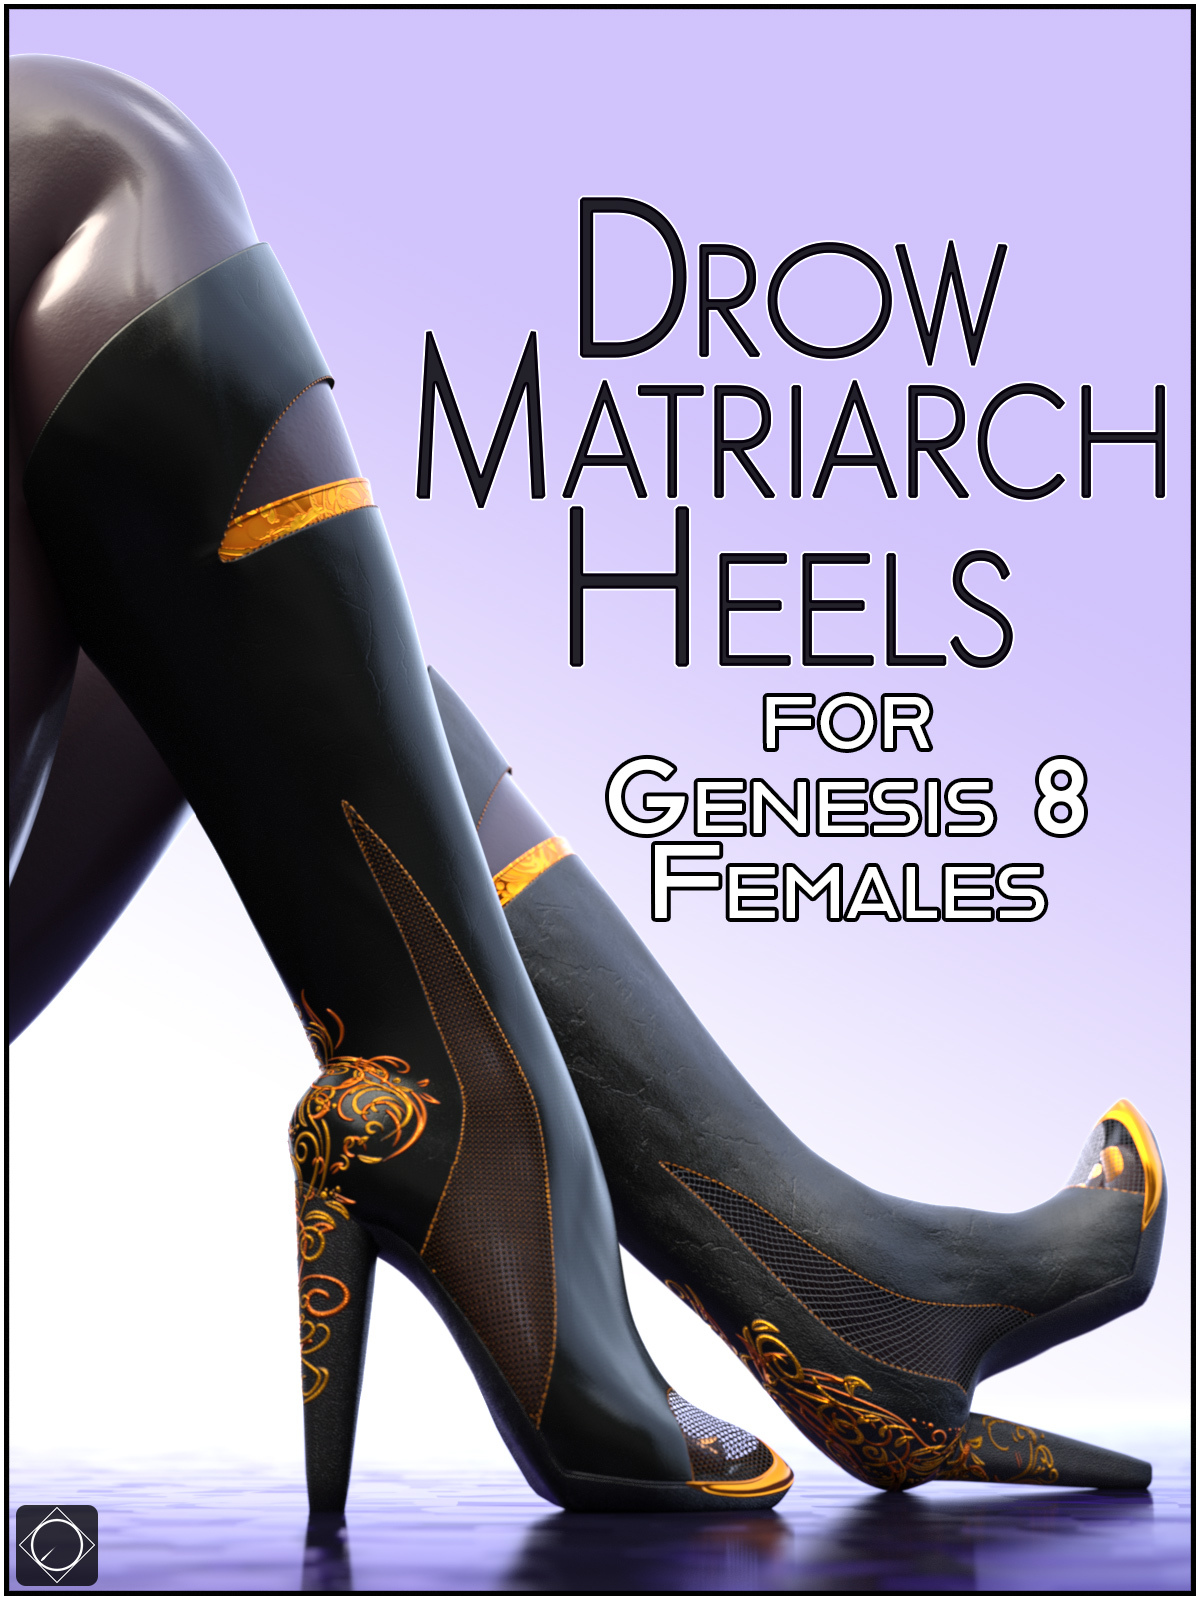 Drow Matriarch Heels for Genesis 8 Females by SWTrium